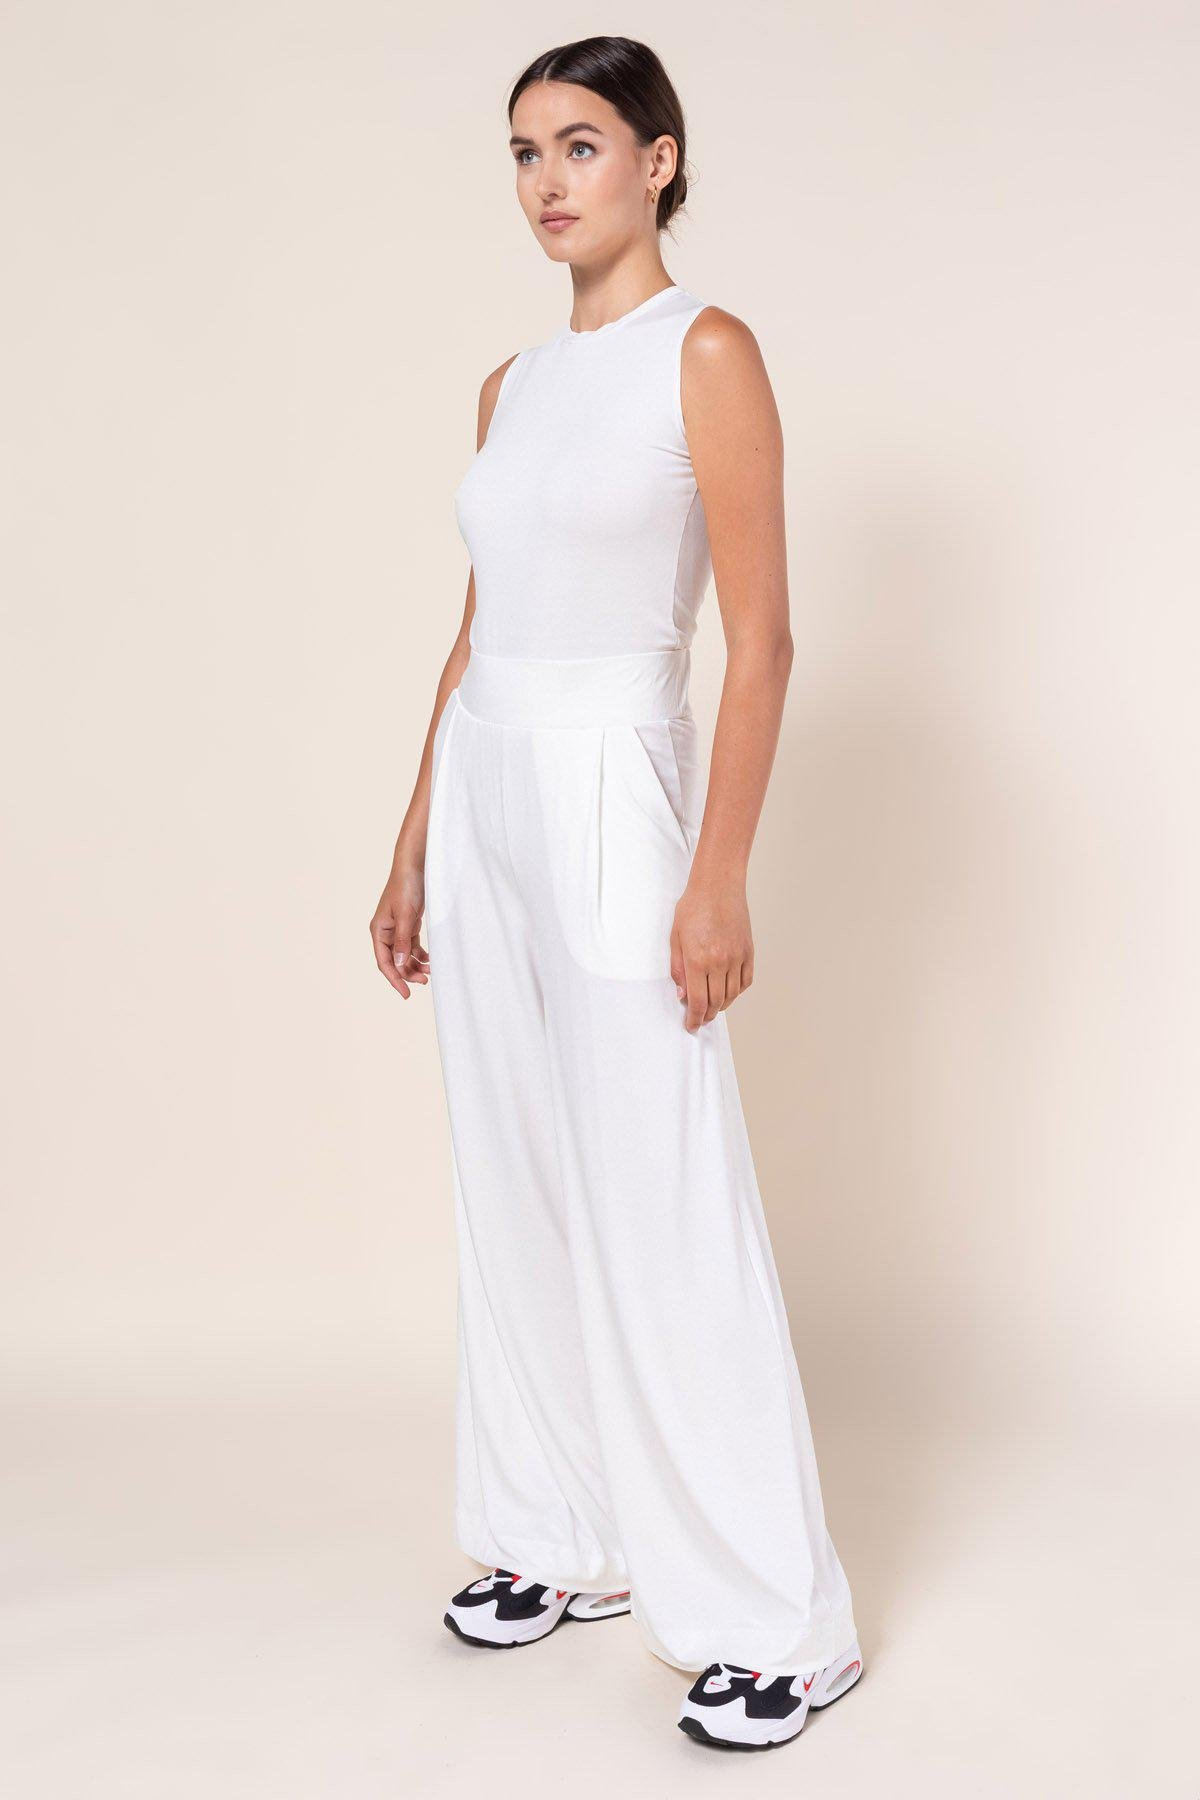 Dylan Baggy High Waist Pant - White 1